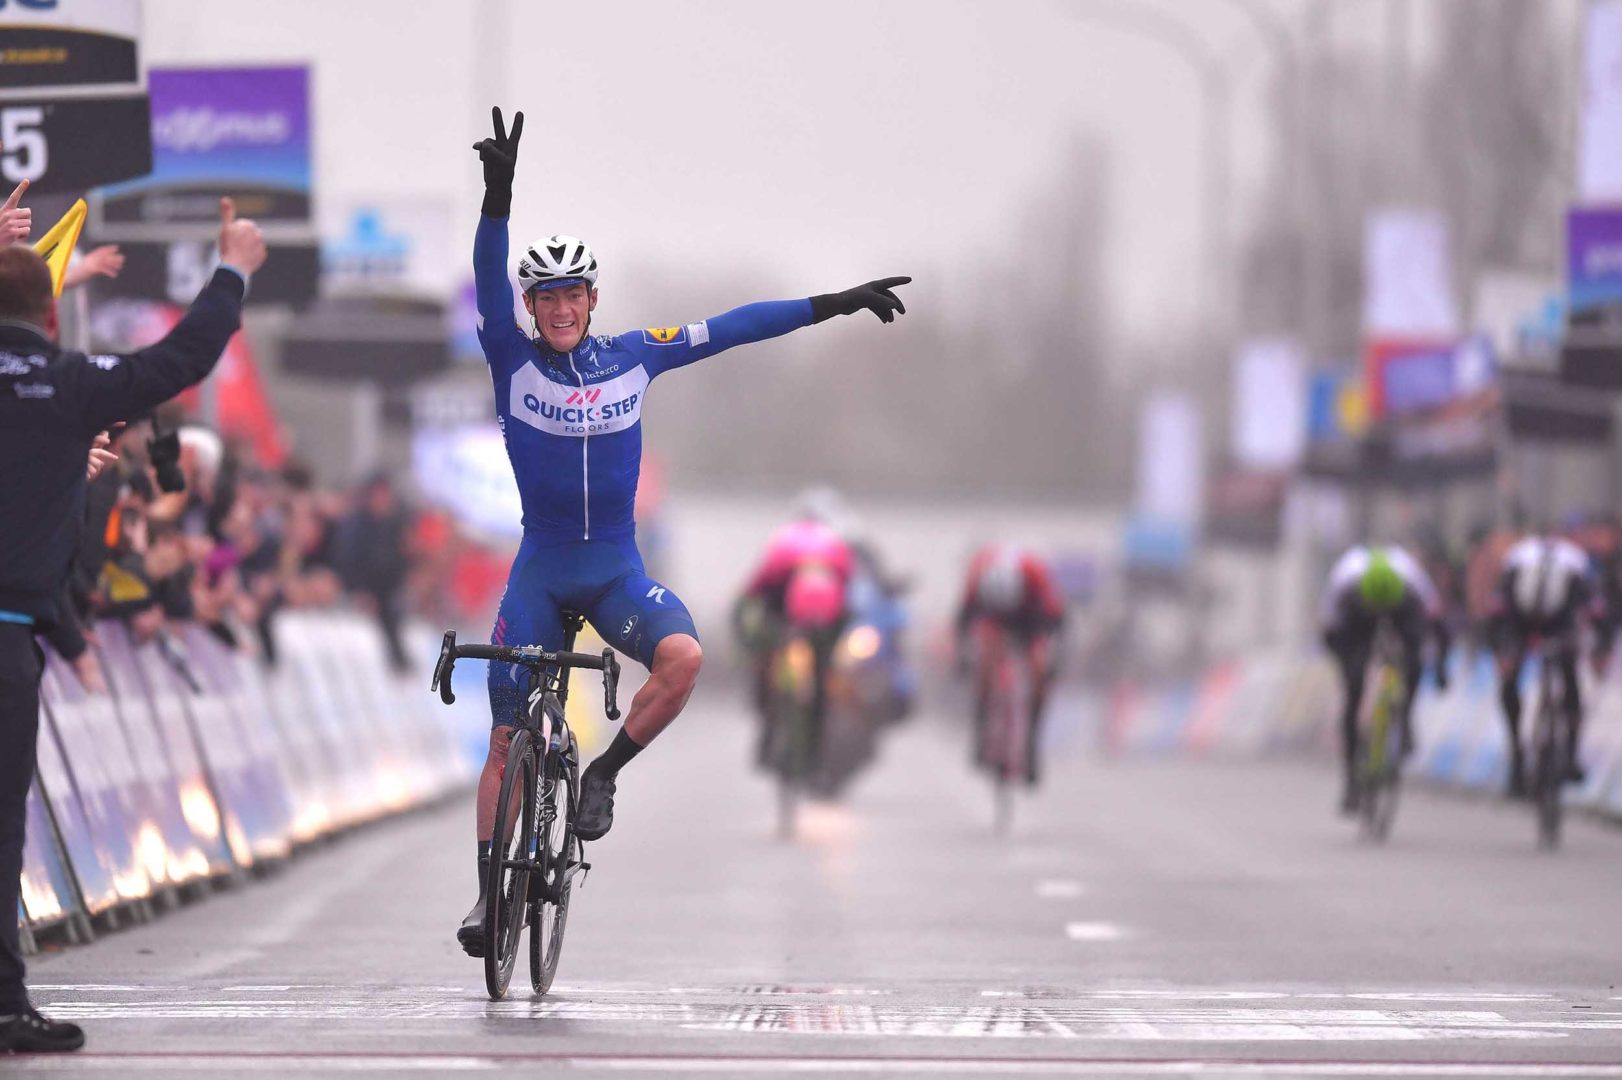 WAREGEM, BELGIUM - MARCH 28: Arrival / Yves Lampaert of Belgium and Team Quick-Step Floors / Celebration / during the 73rd Dwars door Vlaanderen 2018 a 180,1km race from Roeselare to Waregem on March 28, 2018 in Waregem, Belgium. (Photo by Tim de Waele/Getty Images)